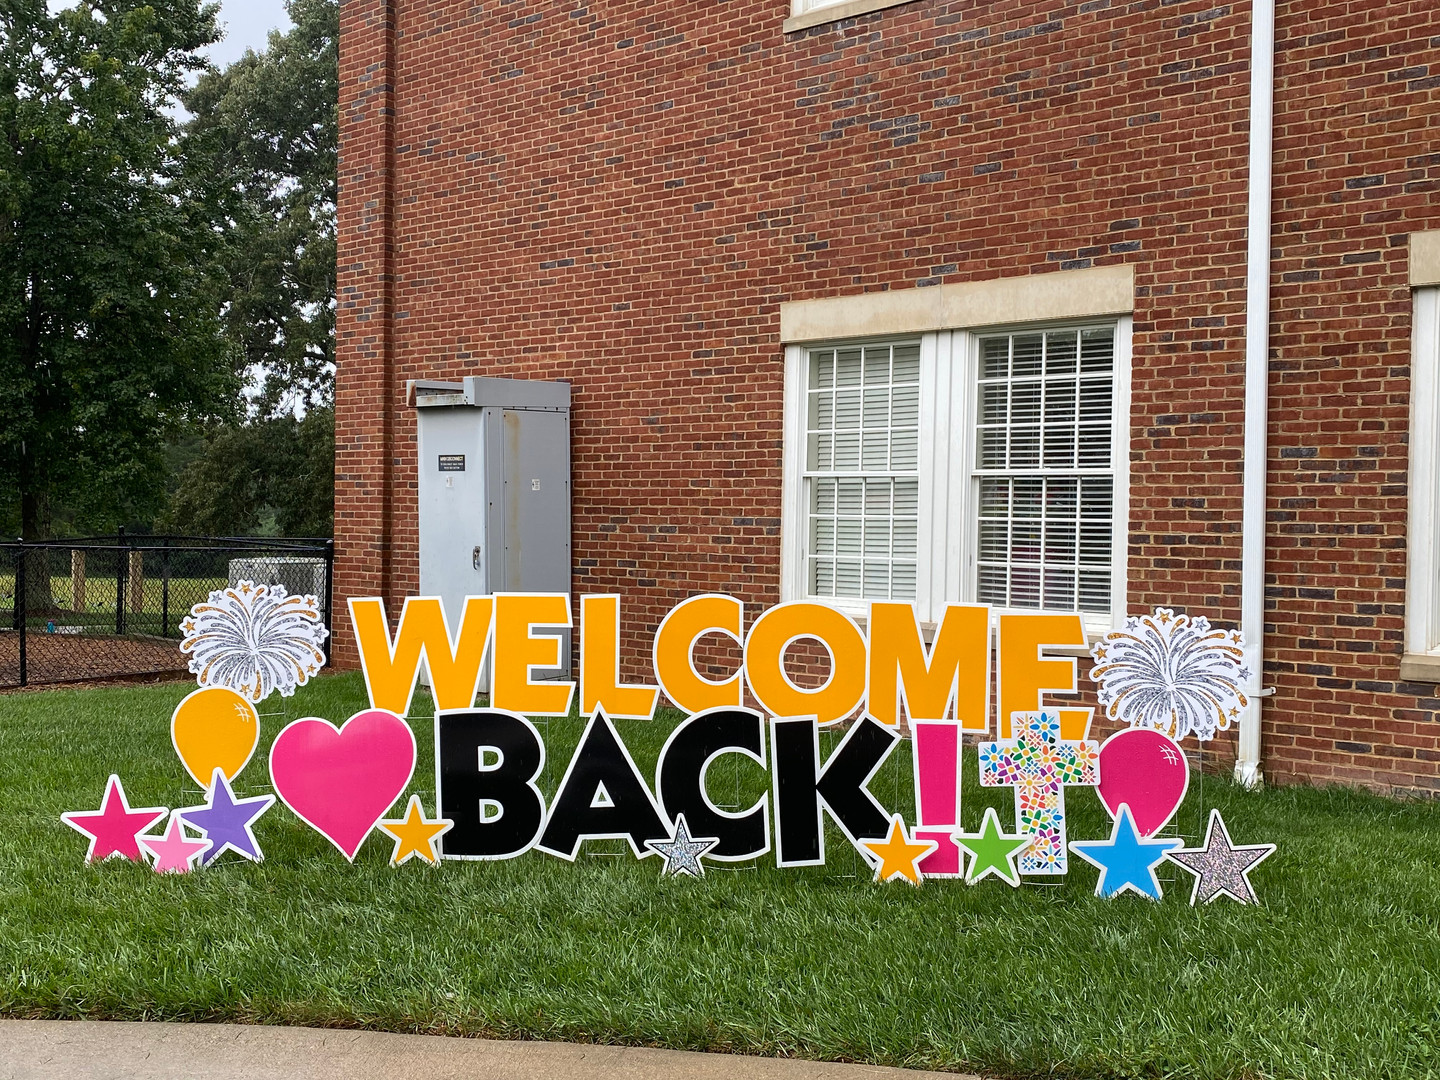 WELCOME BACK CHURCH!.jpg